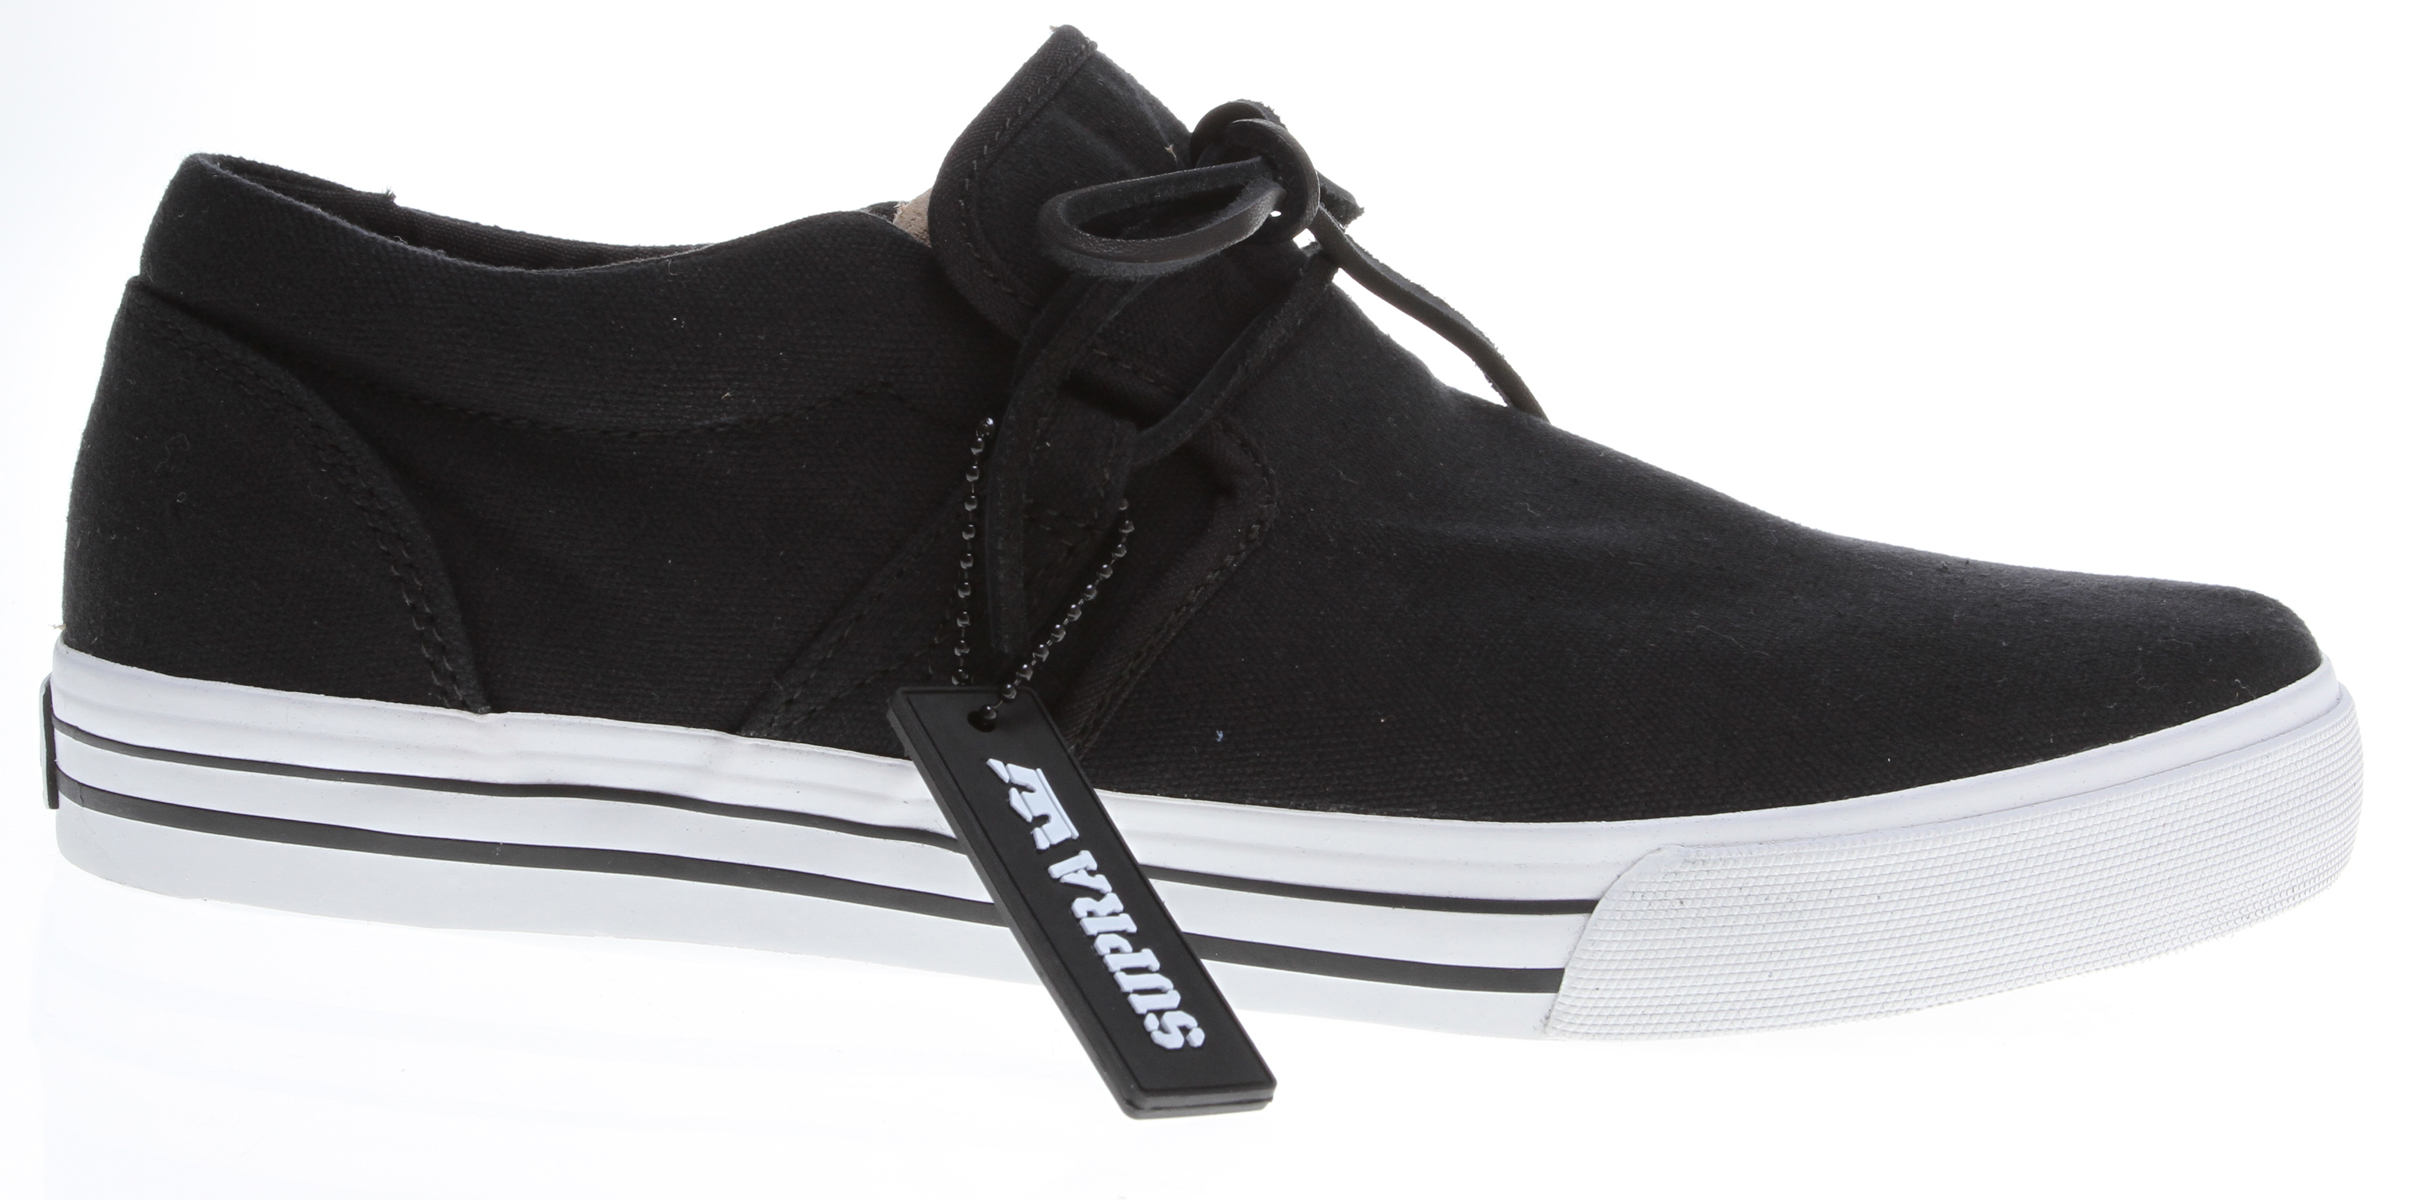 Skateboard Key Features of the Supra Cuban Skate Shoes: Ultra lightweight. Breathable. Flexible. Eco friendly. Does not require harmful adhesives. Will not lose elasticity under compression. When molded into midsole, provides unmatched cushioning and comfort. - $60.00